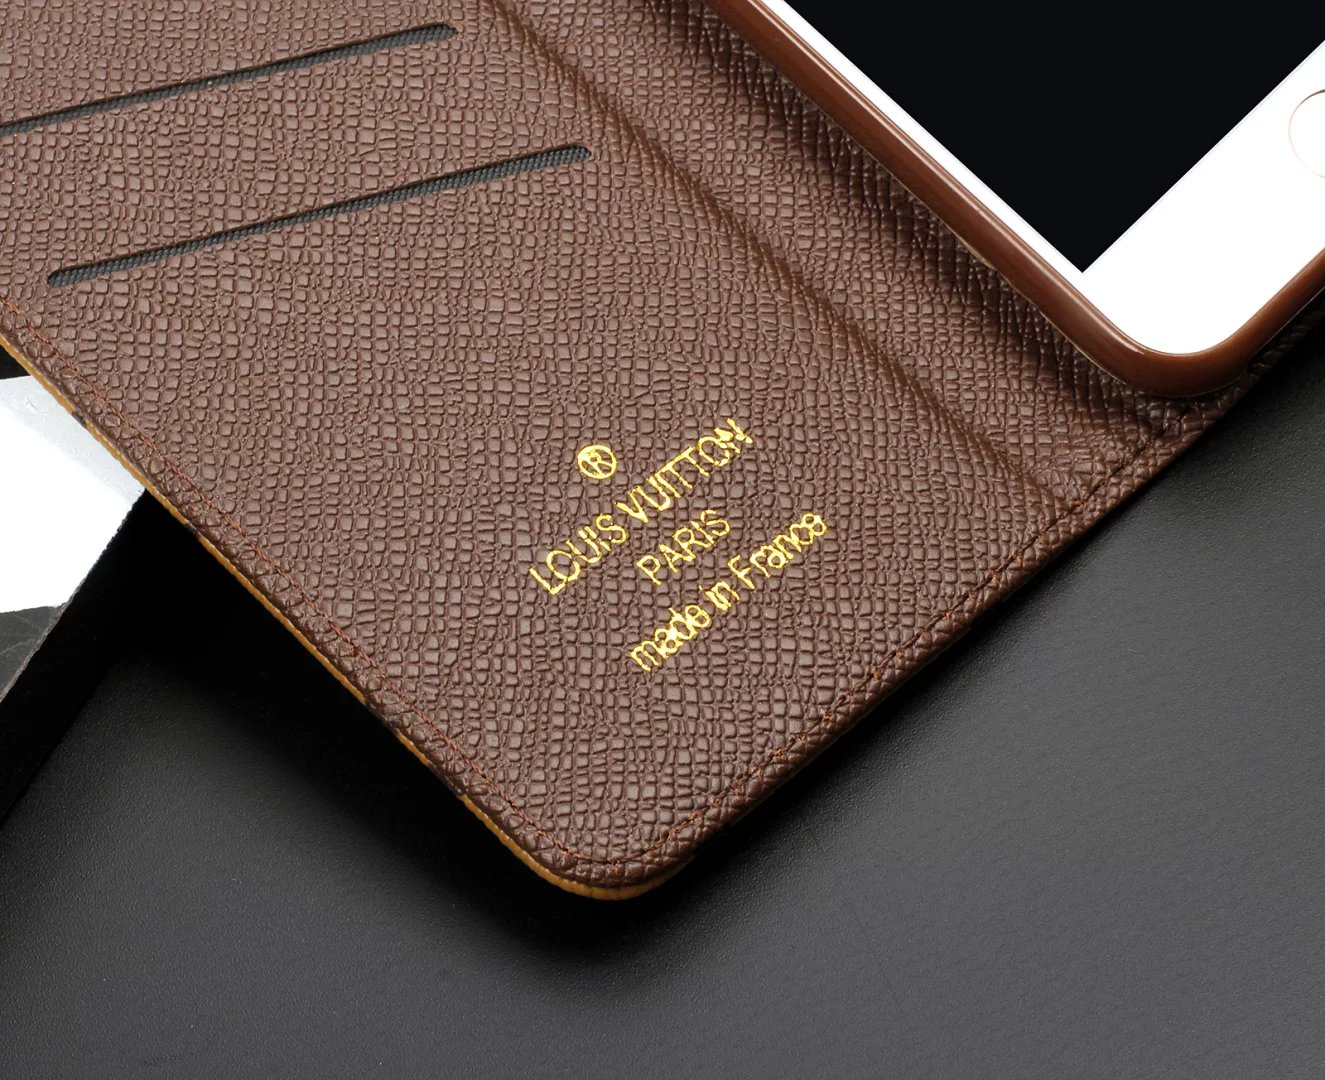 iphone hülle foto eigene iphone hülle Louis Vuitton iphone7 Plus hülle bumper hülle iphone 7 Plus goldene iphone 7 Plus hülle iphone 3gs schutzhülle iphone hülle 7 ipad mini ca7 elbst gestalten iphone 7 Plus gürteltasche leder